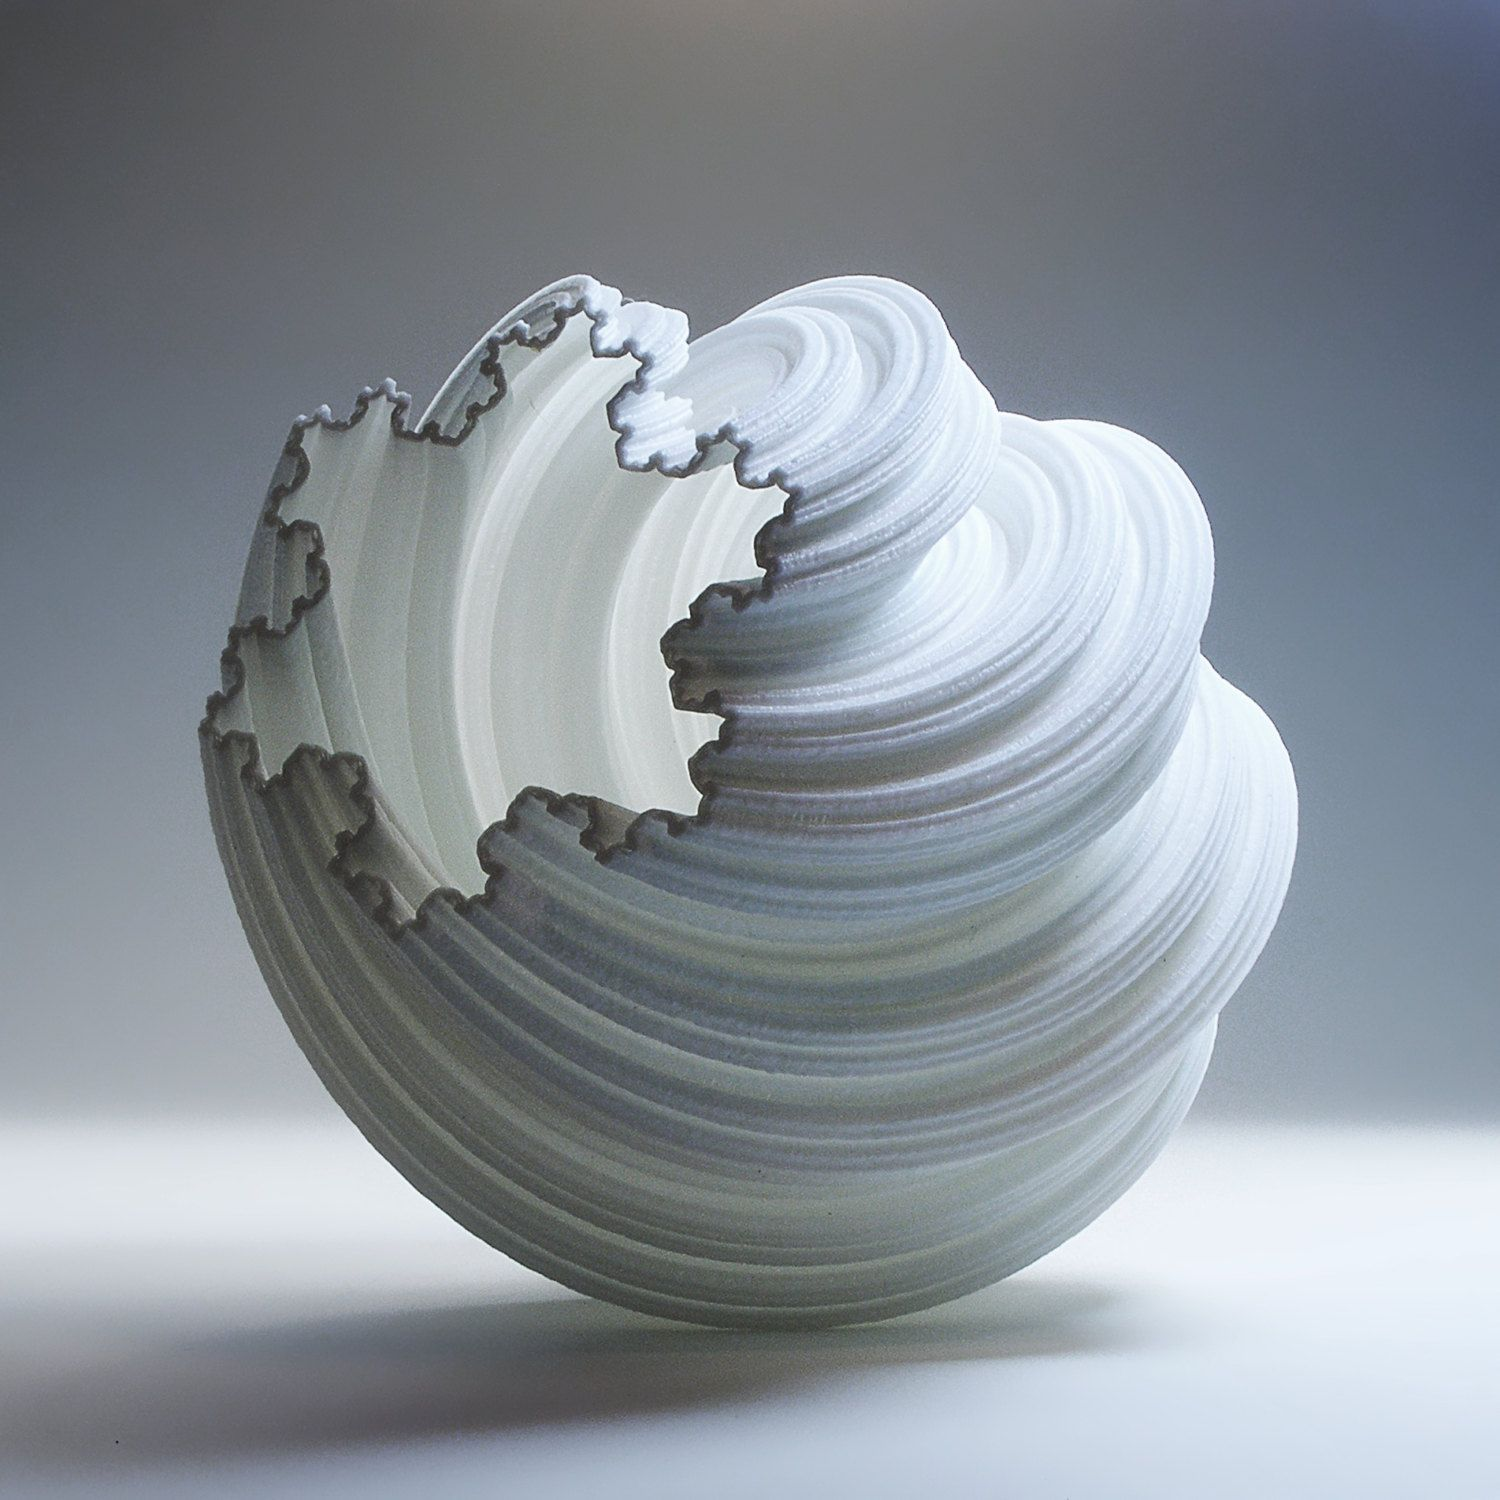 printed by pinshape items vase printing wave klein didier